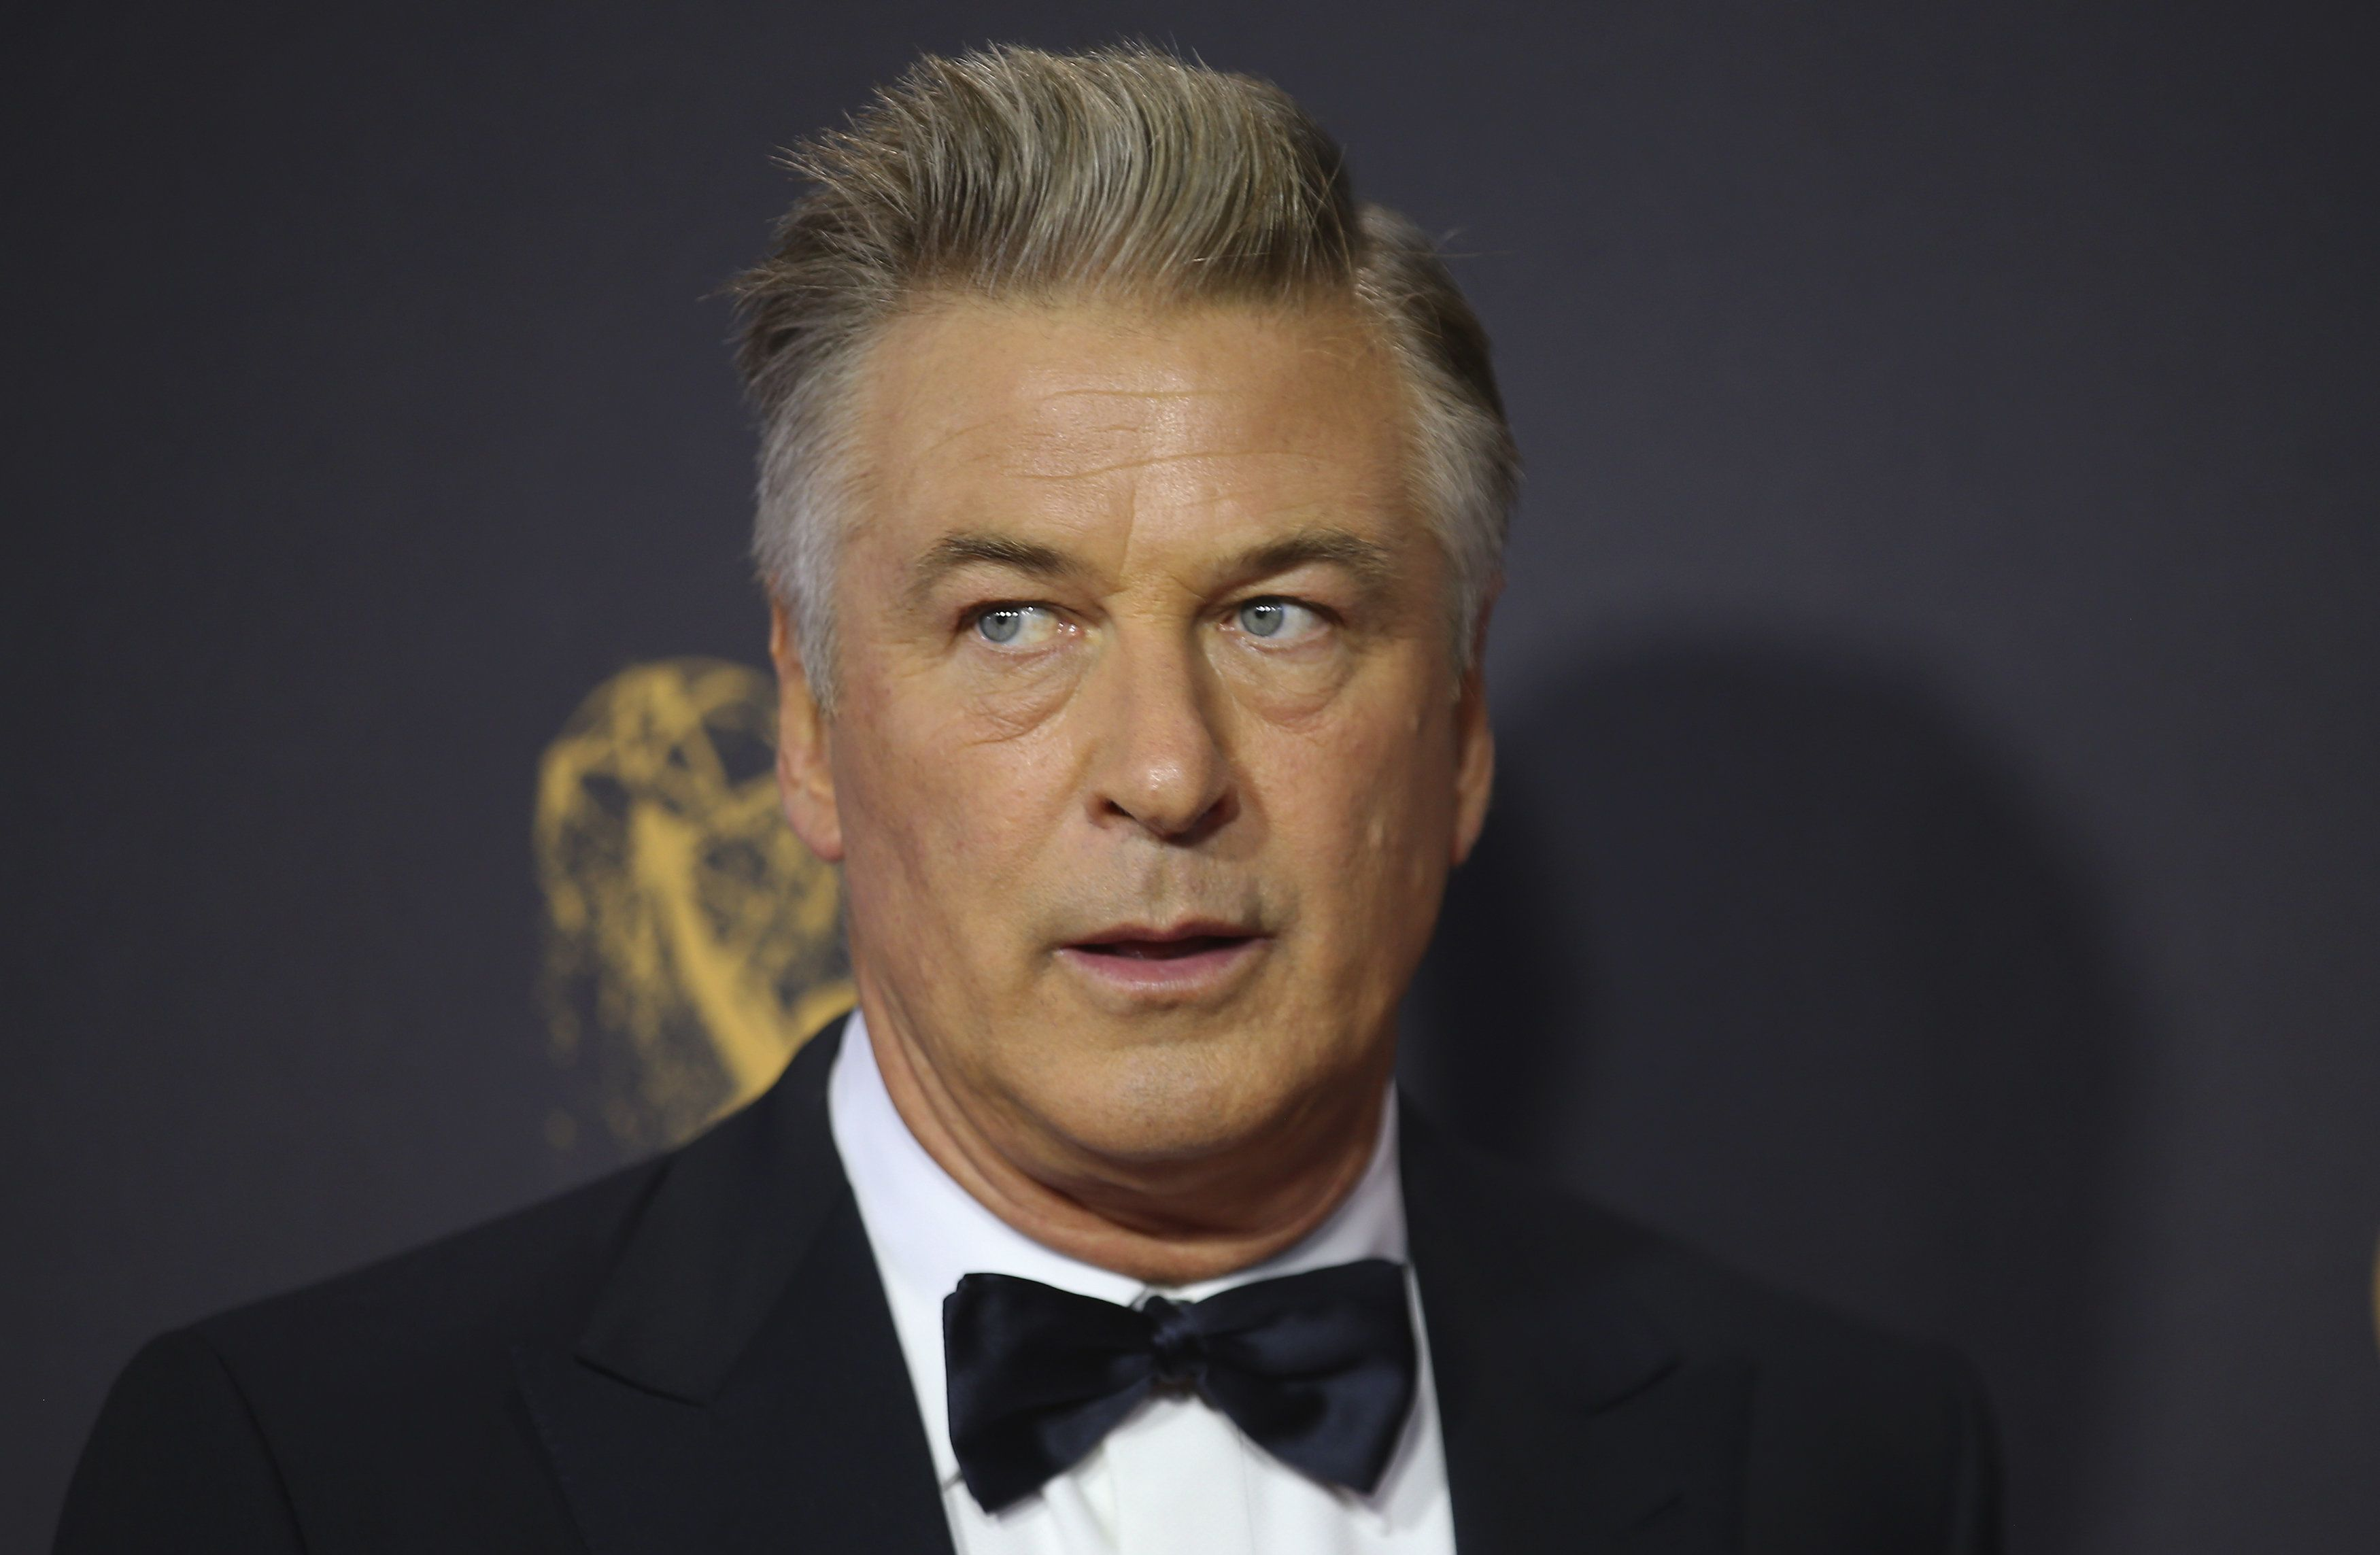 Alec Baldwin Goes Off On Sexist Twitter Rant Against Female